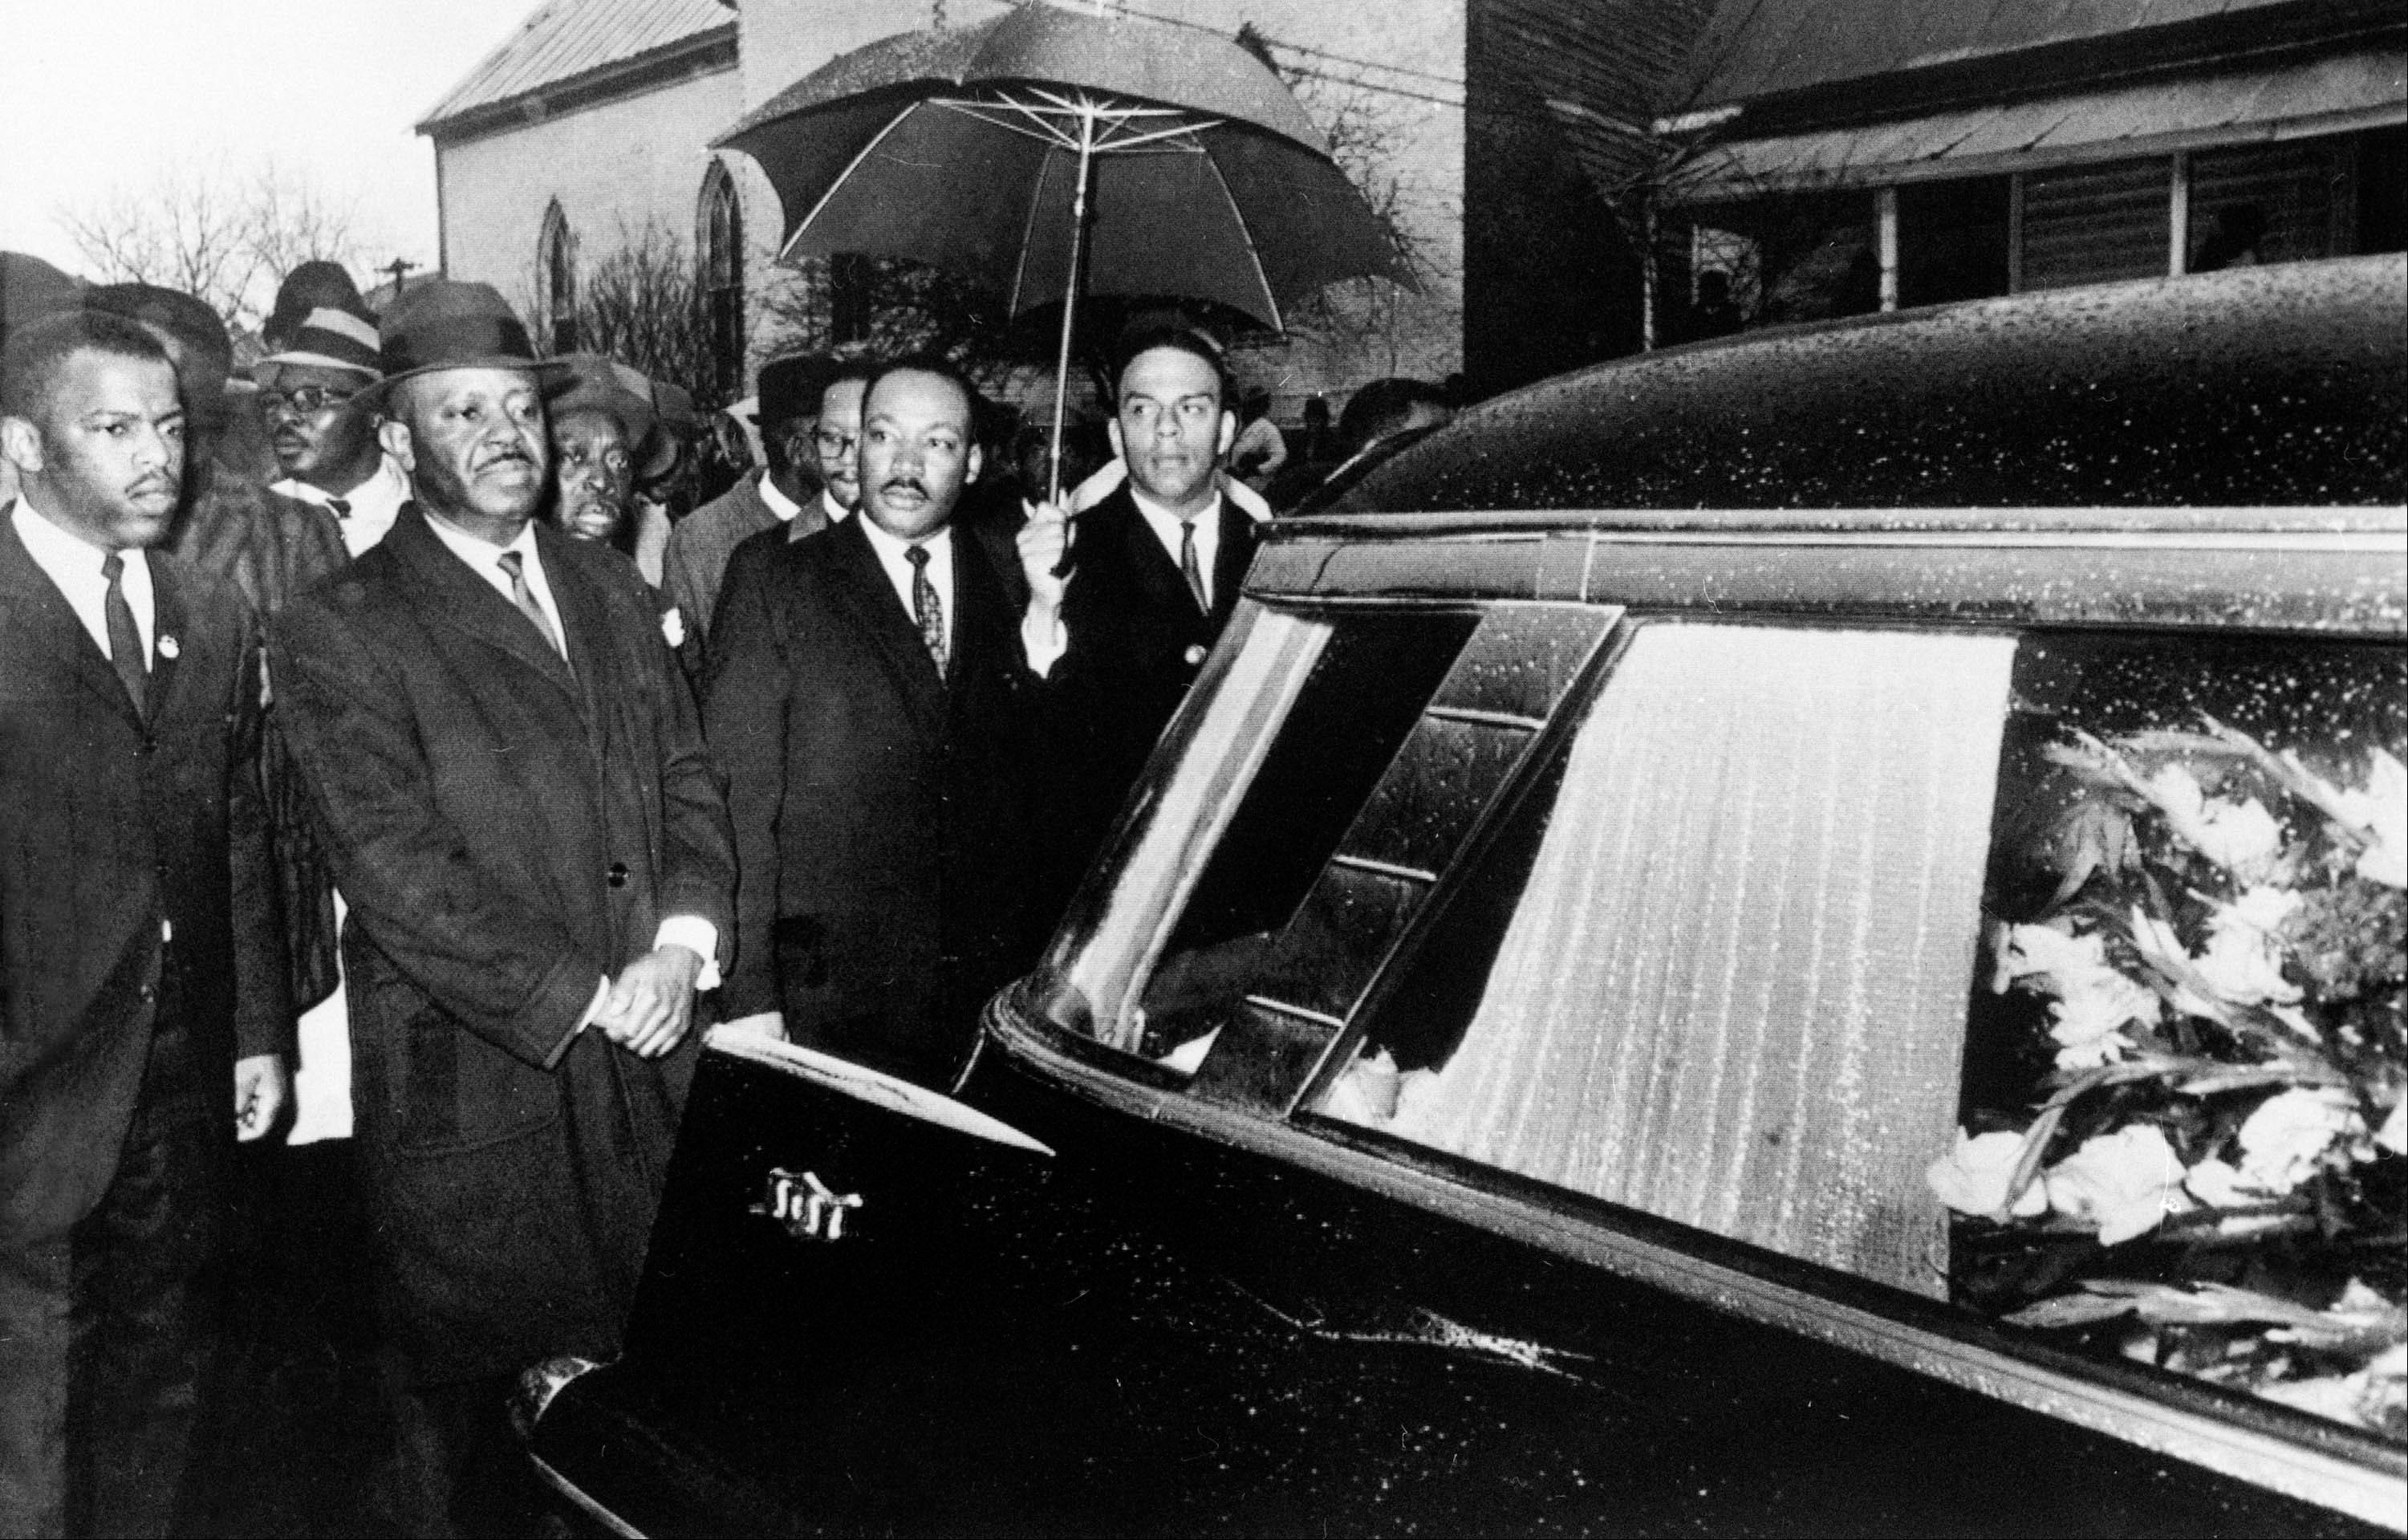 In this March 1, 1965 file photo, Dr. Martin Luther King, Jr. and associates lead a procession following the casket of Jimmy Lee Jackson during a funeral service in Marion, Ala. In November 2010, former Alabama state trooper James Bonard Fowler pleaded guilty to second-degree manslaughter in the 1965 shooting of Jimmie Lee Jackson during a civil rights demonstration in Marion.